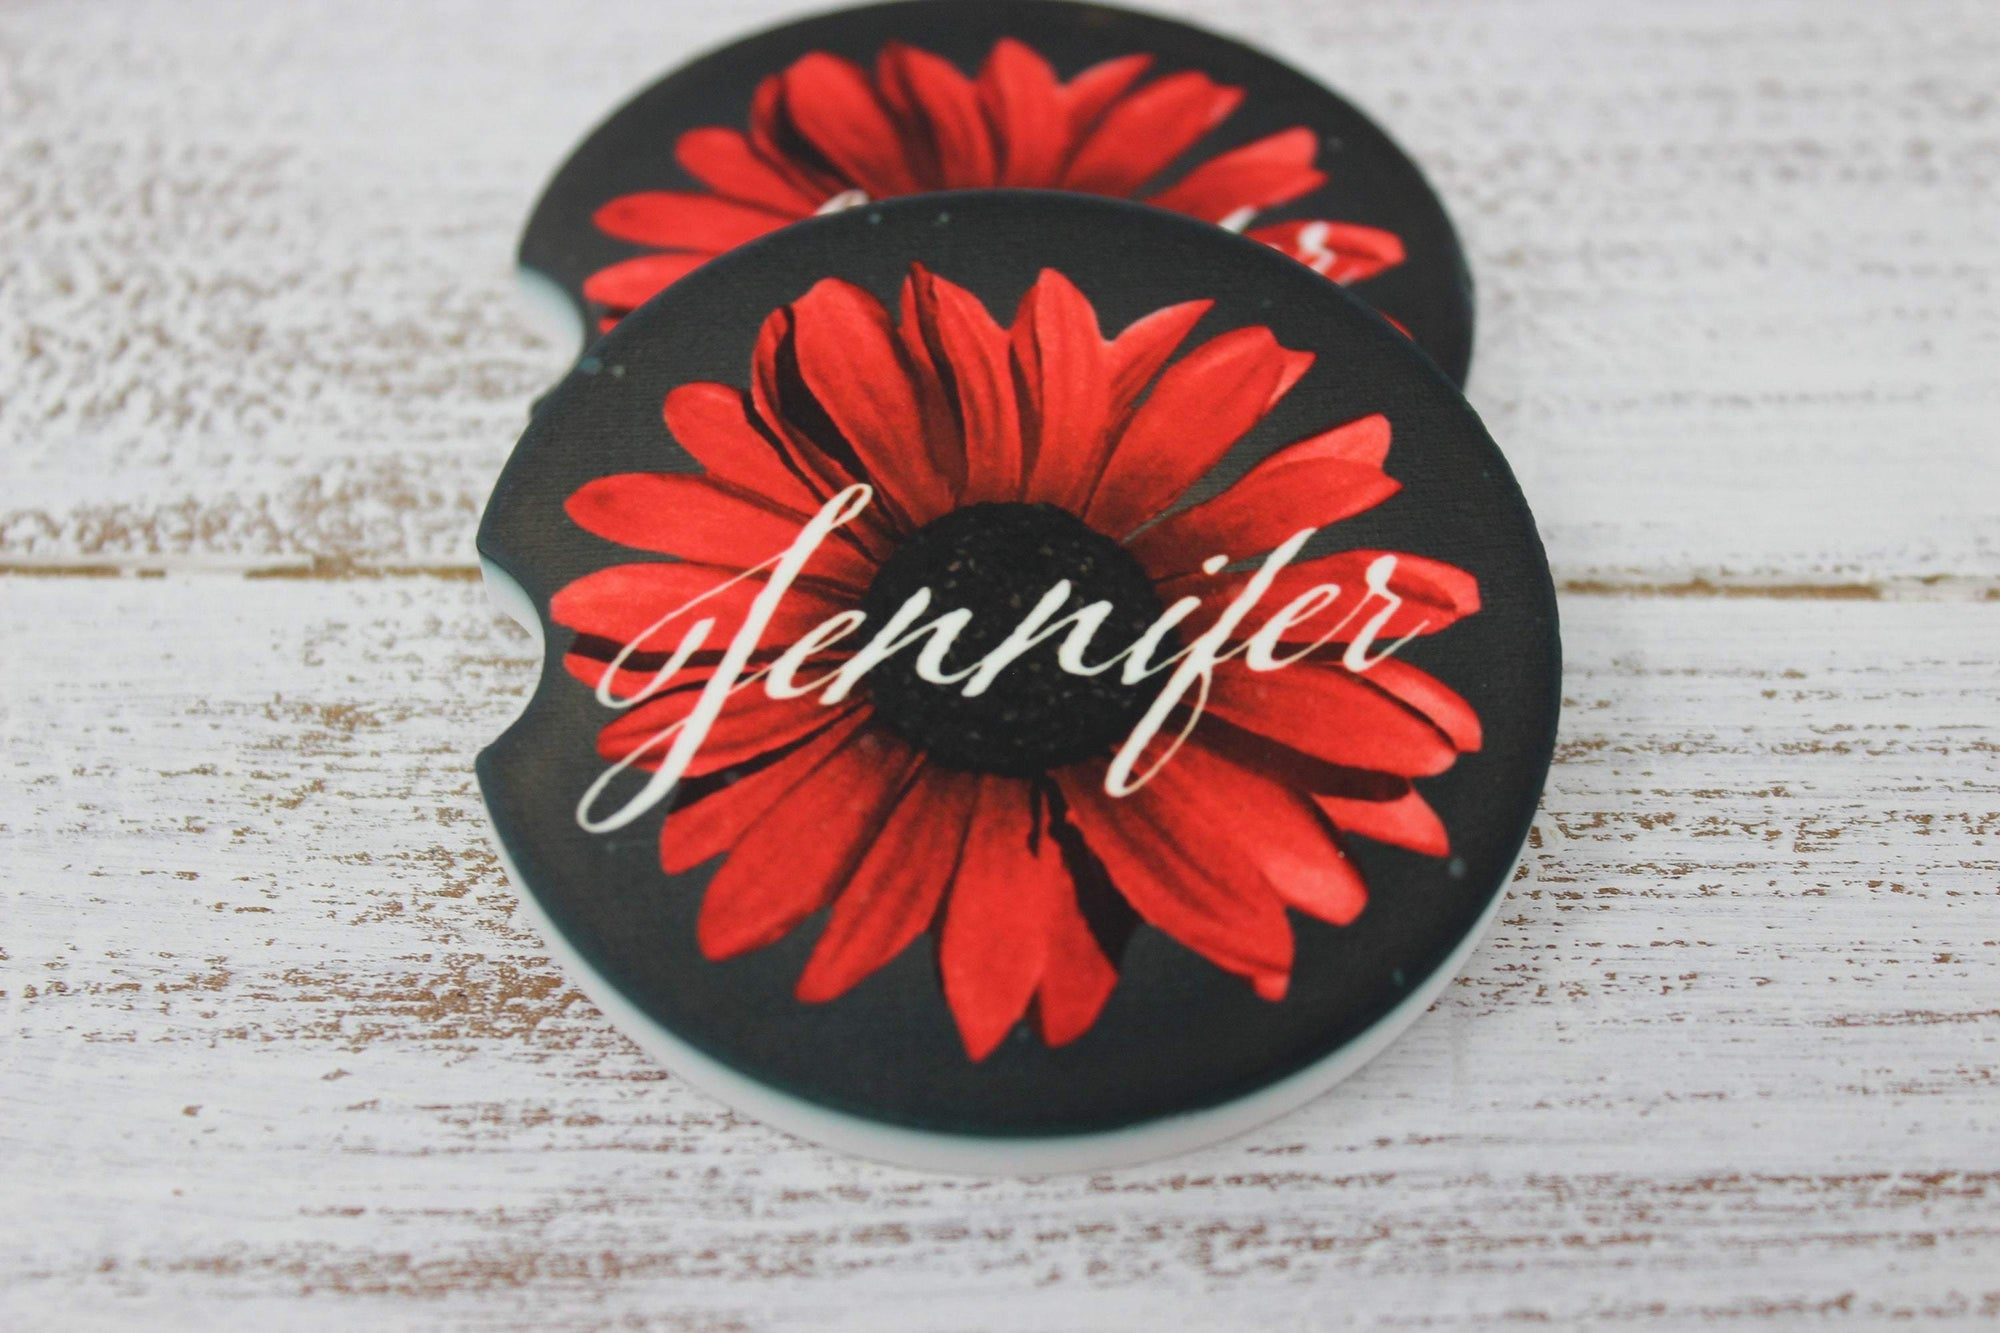 Car Accessories | Personalized Car Coasters | Custom Car Accessories | Gerber Daisy | Set of 2 | This and That Solutions | Personalized Gifts | Custom Home Décor